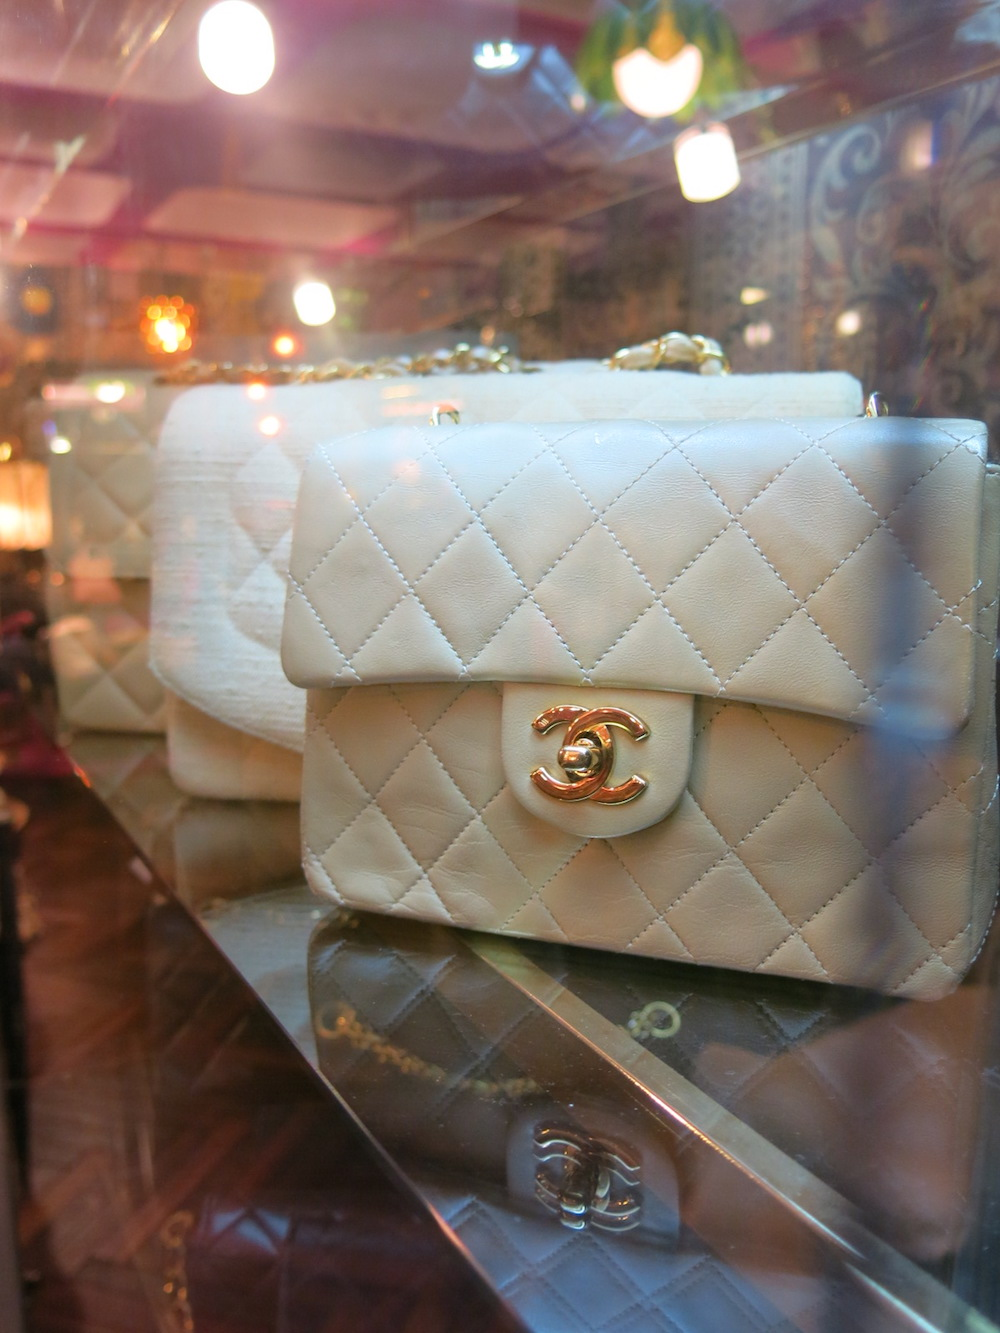 5a1fa9891552 Qoo: Edging out the others as Tokyo's best vintage luxury boutique ...